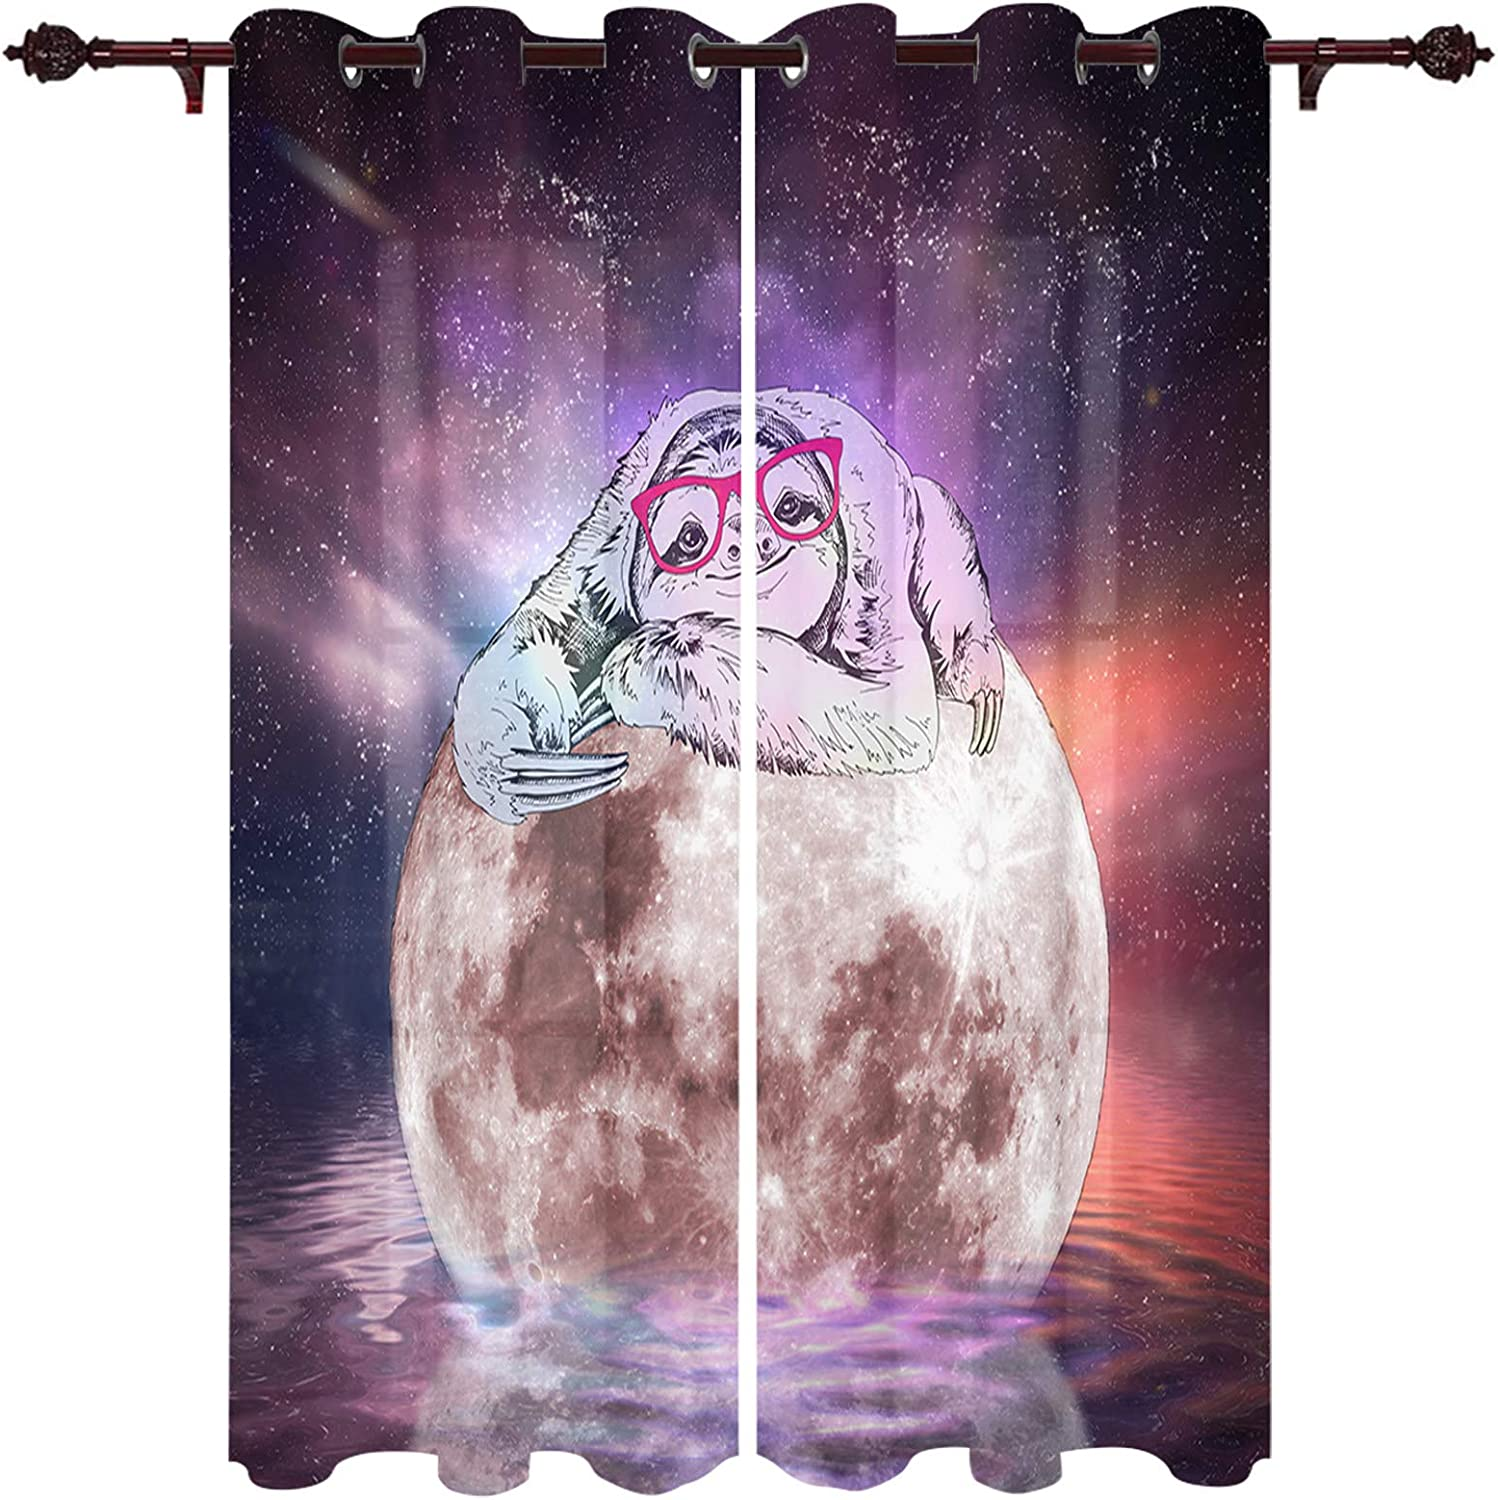 Quantity limited Window Treatment Sheer Curtains Animal Sloth Color Moon W Limited price Starry